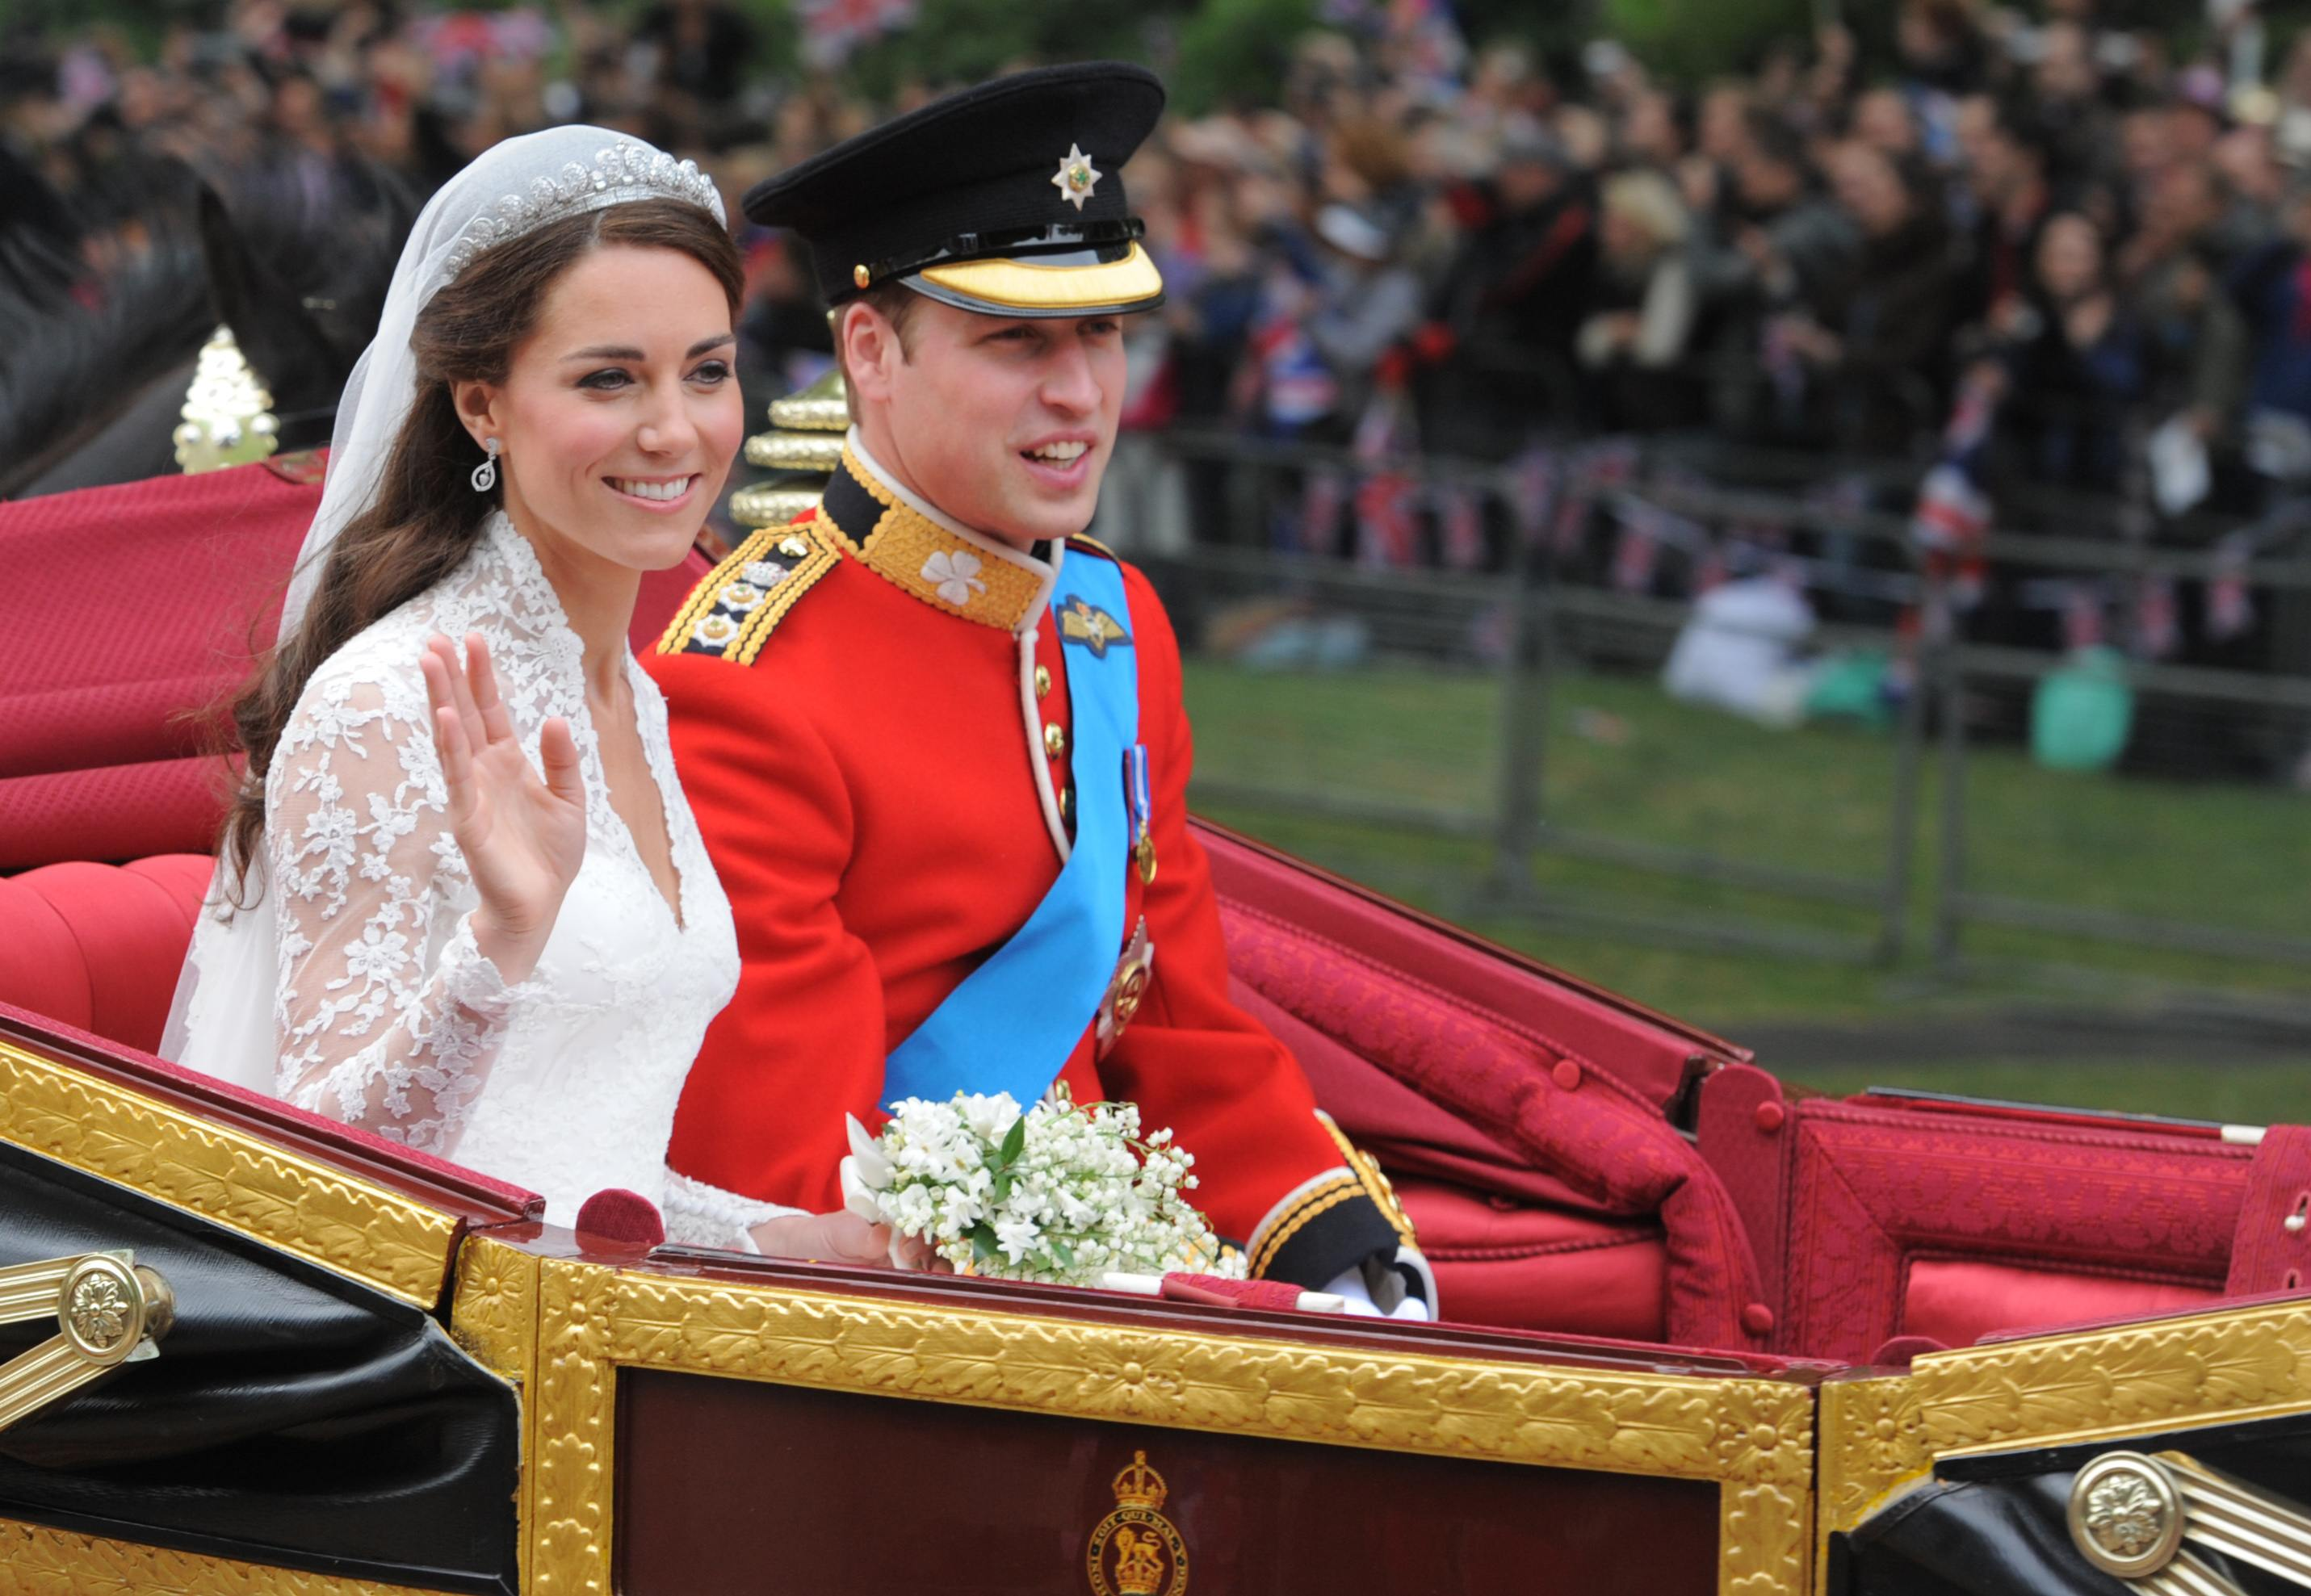 Kate Middleton and Prince William's wedding